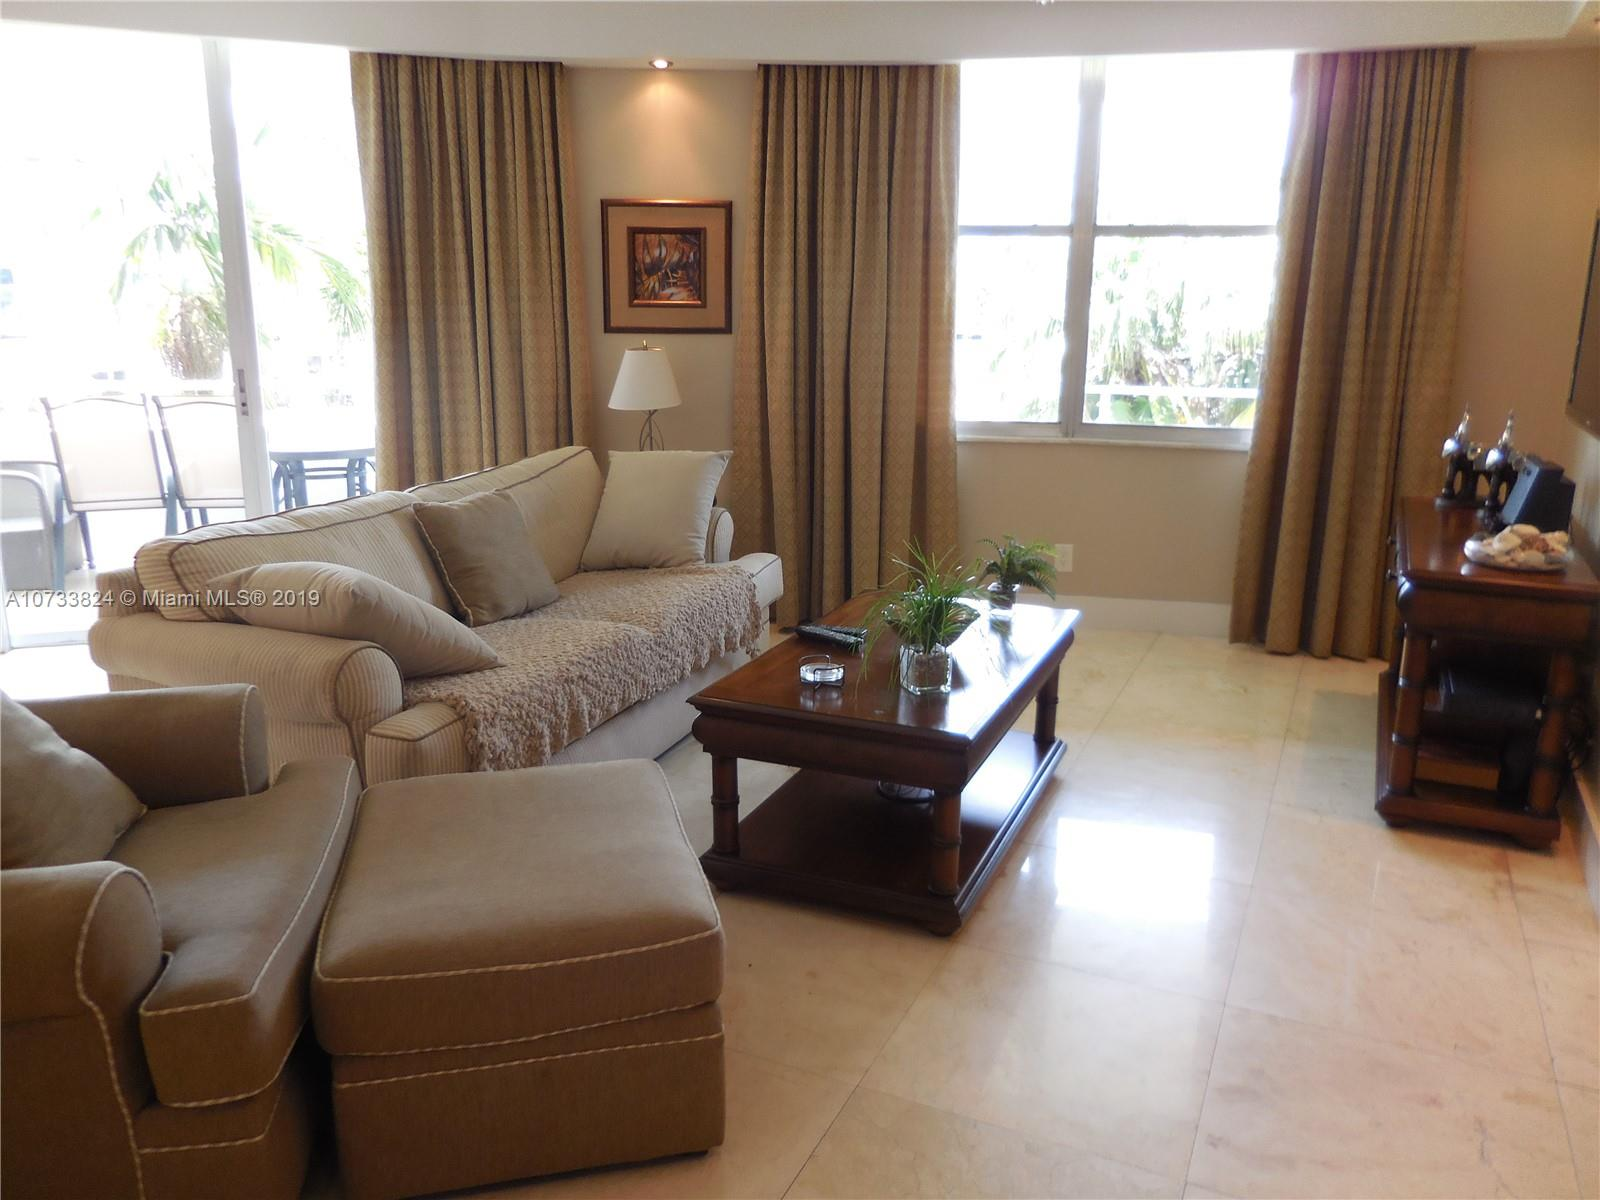 5161  Collins Ave #205 For Sale A10733824, FL